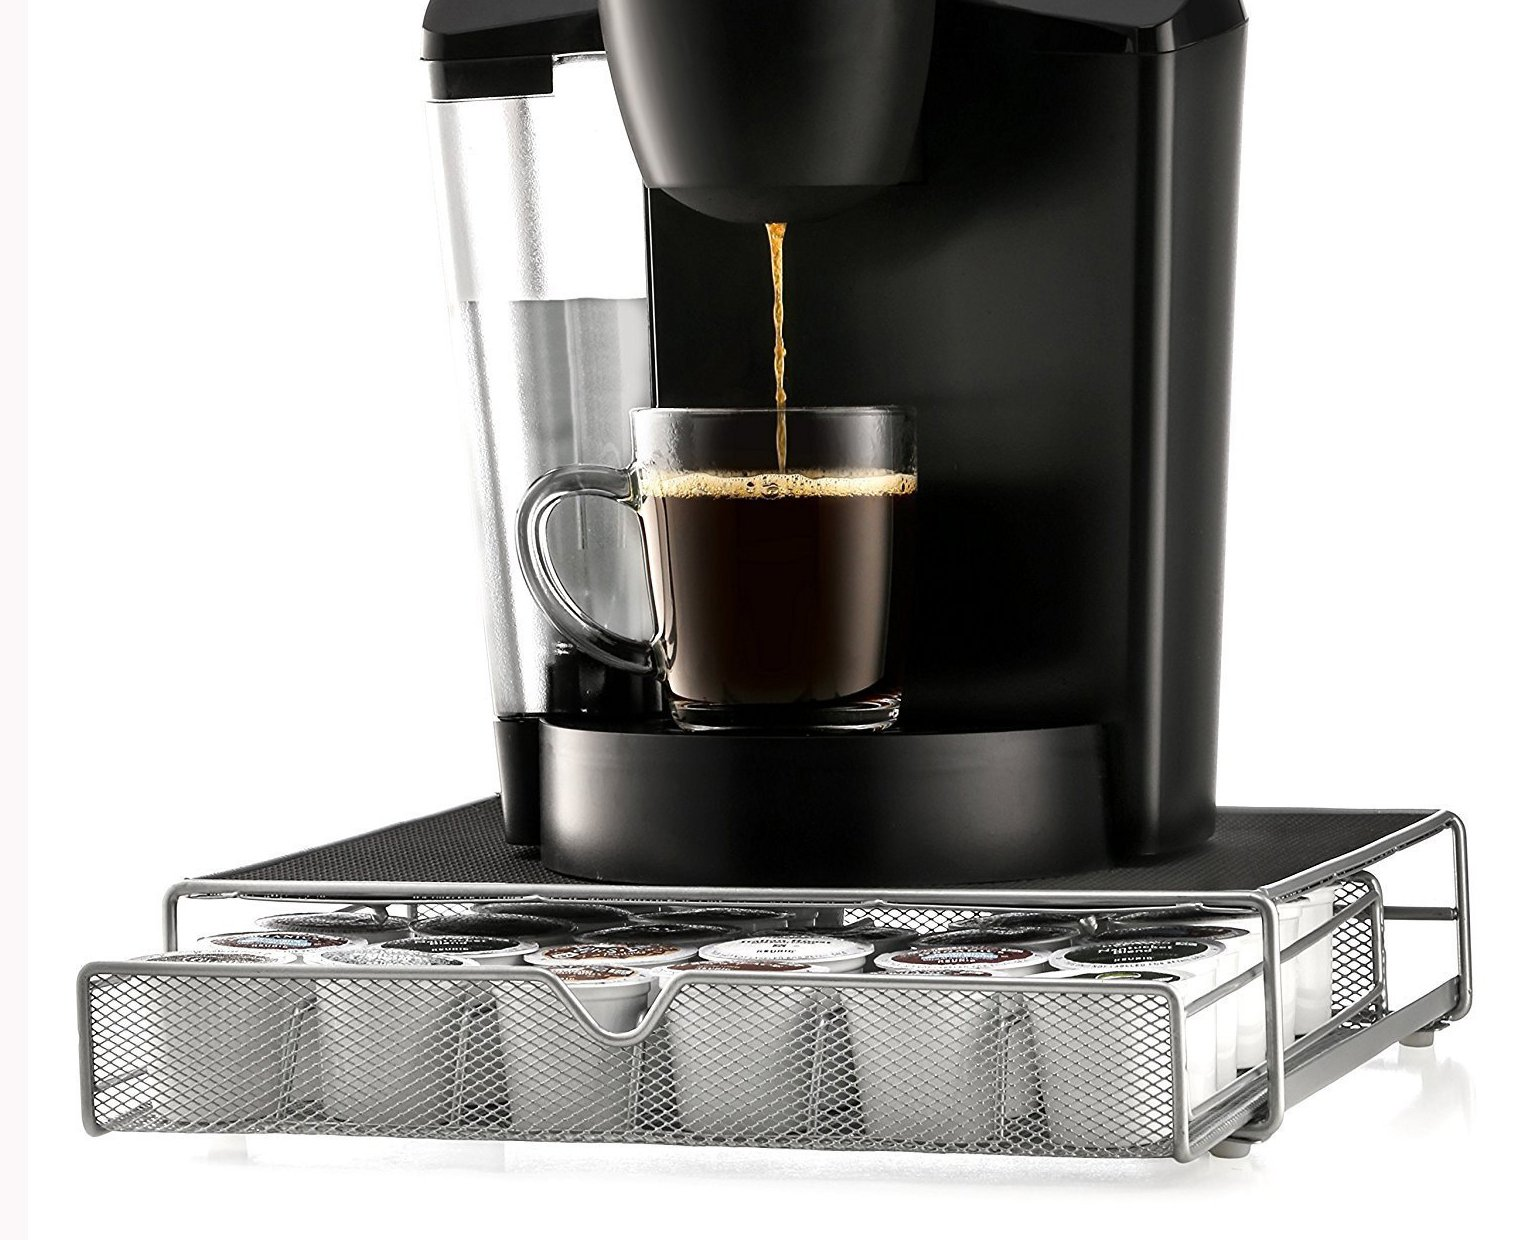 iHim K Cup Storage Organizer Holds for Coffee Brewing Machine K-cup Pods Drawer Holds 36 Capsules Rack Black